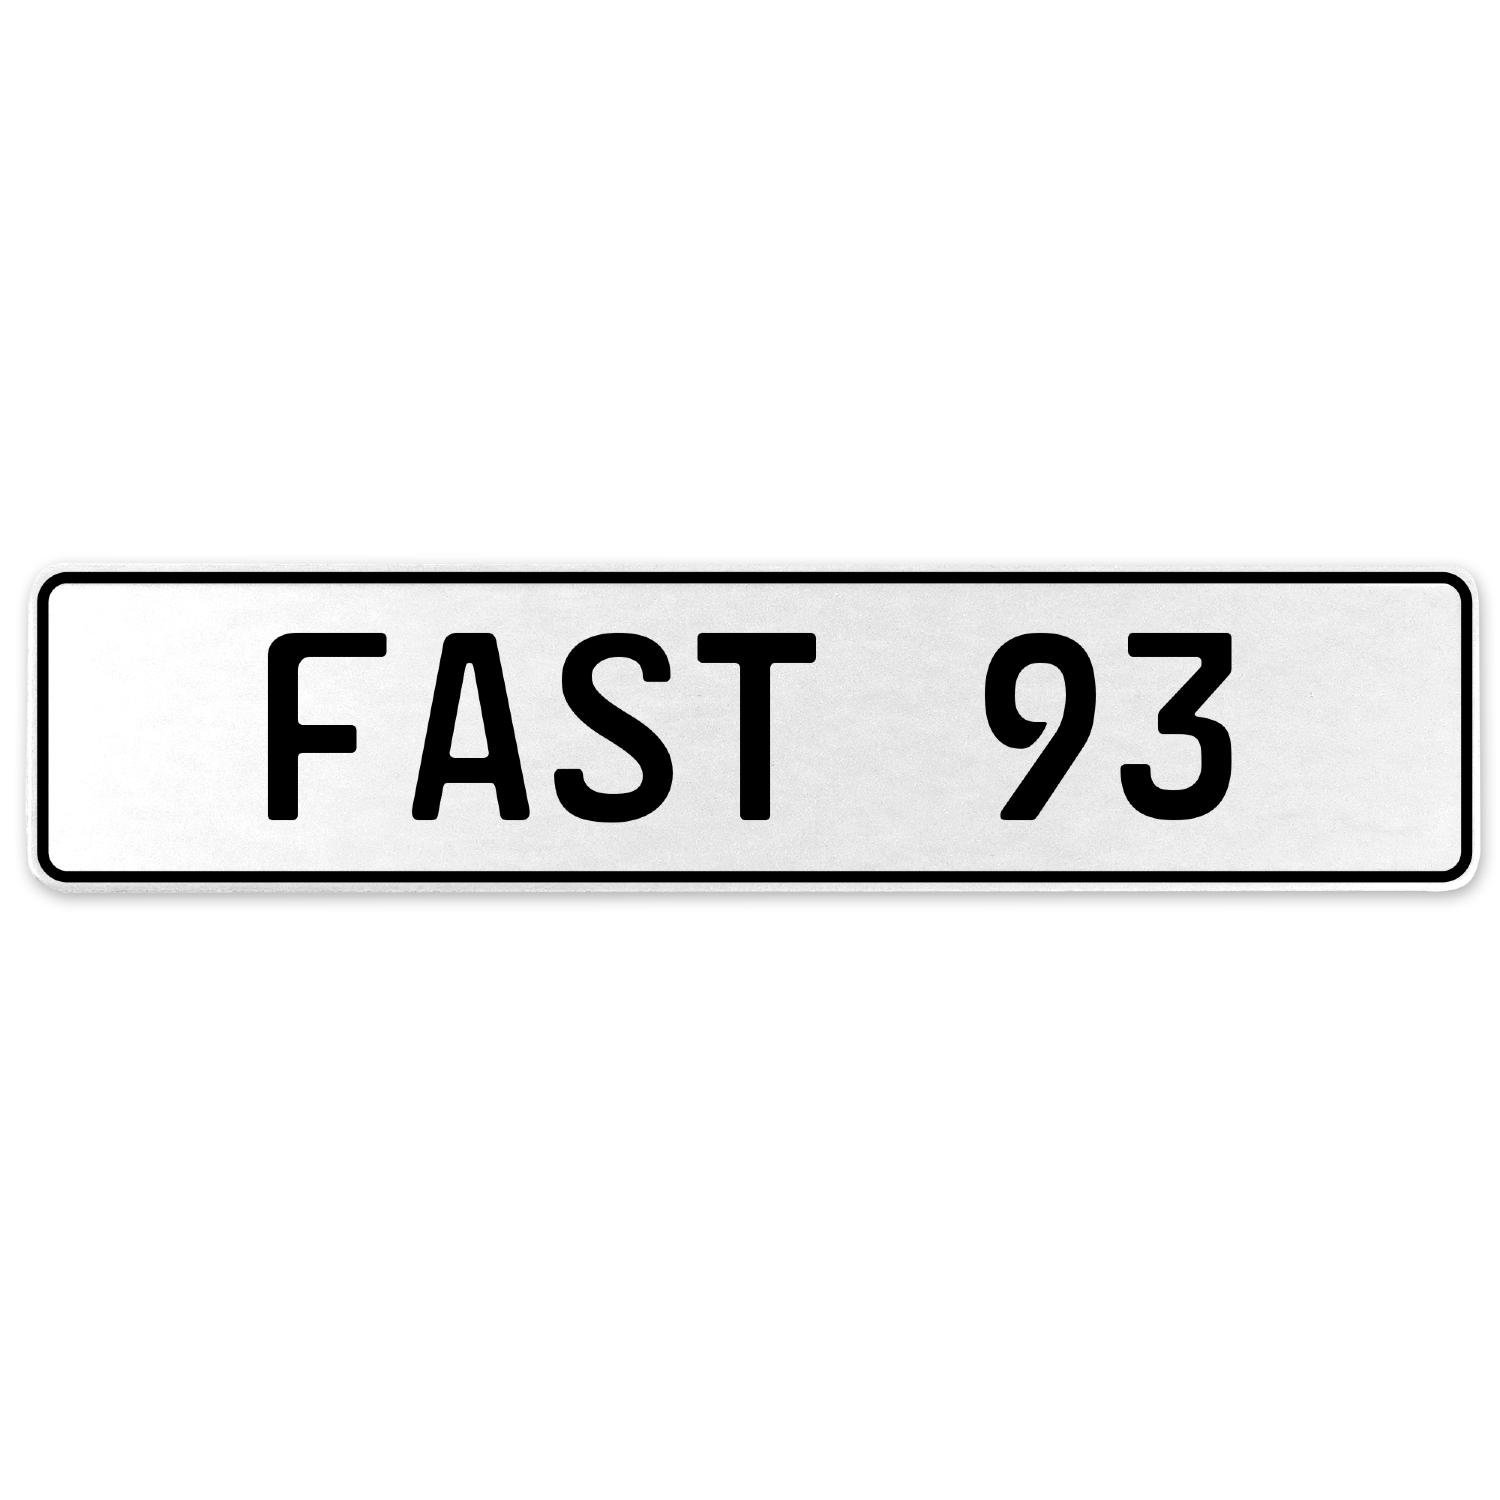 Vintage Parts 557363 Fast 93 White Stamped Aluminum European License Plate